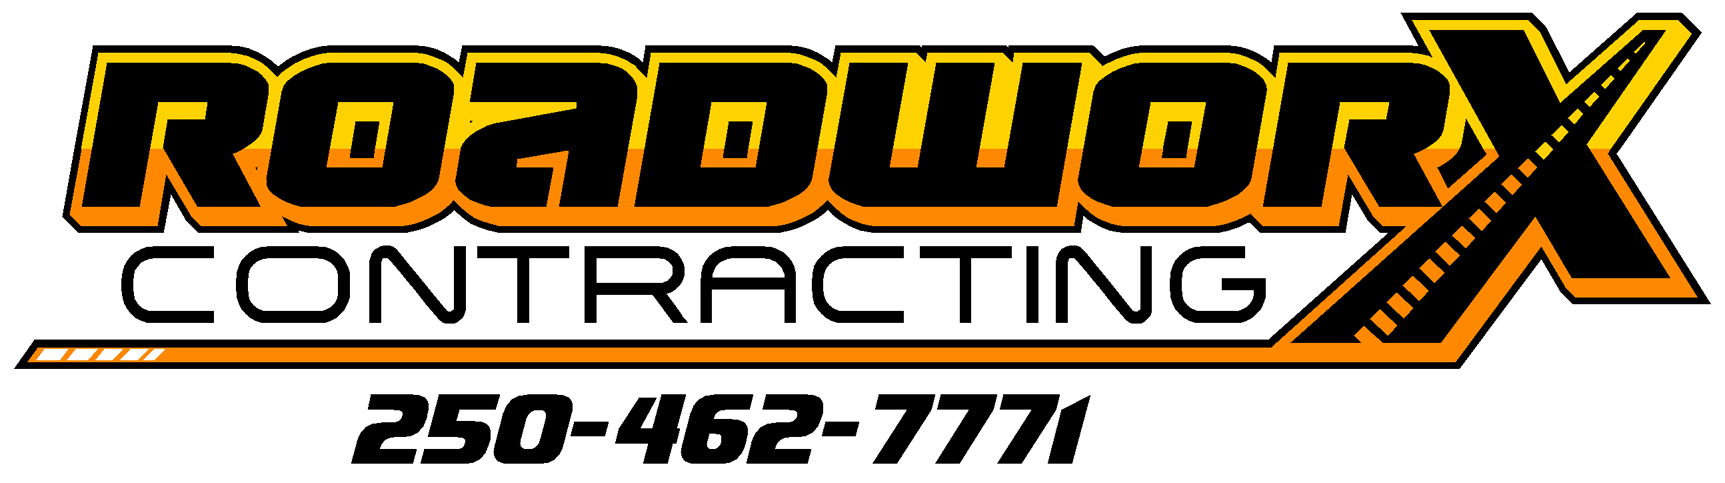 ROADWORX CONTRACTING LOGO